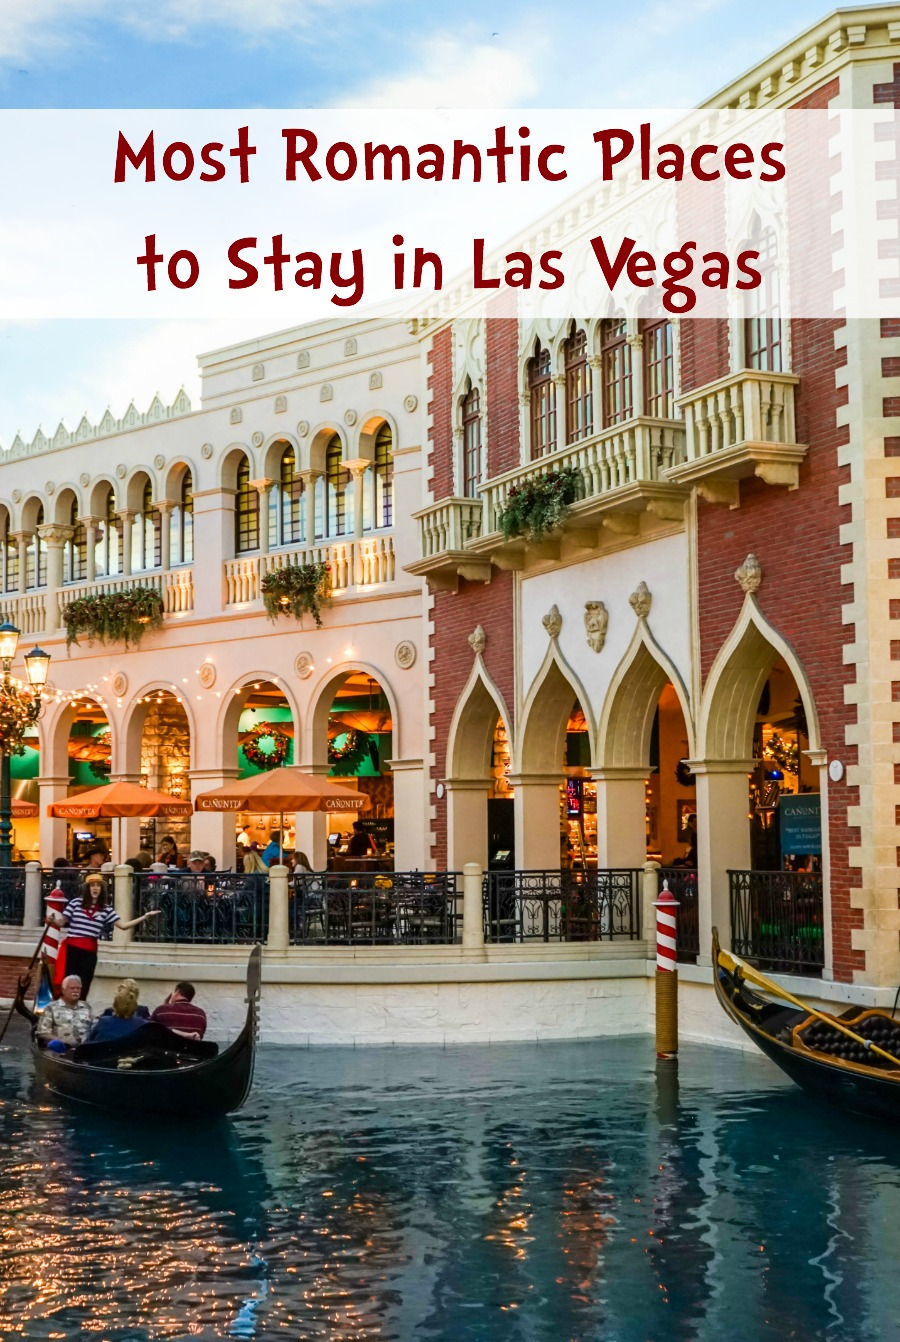 most-romantic-places-to-stay-in-las-vegas